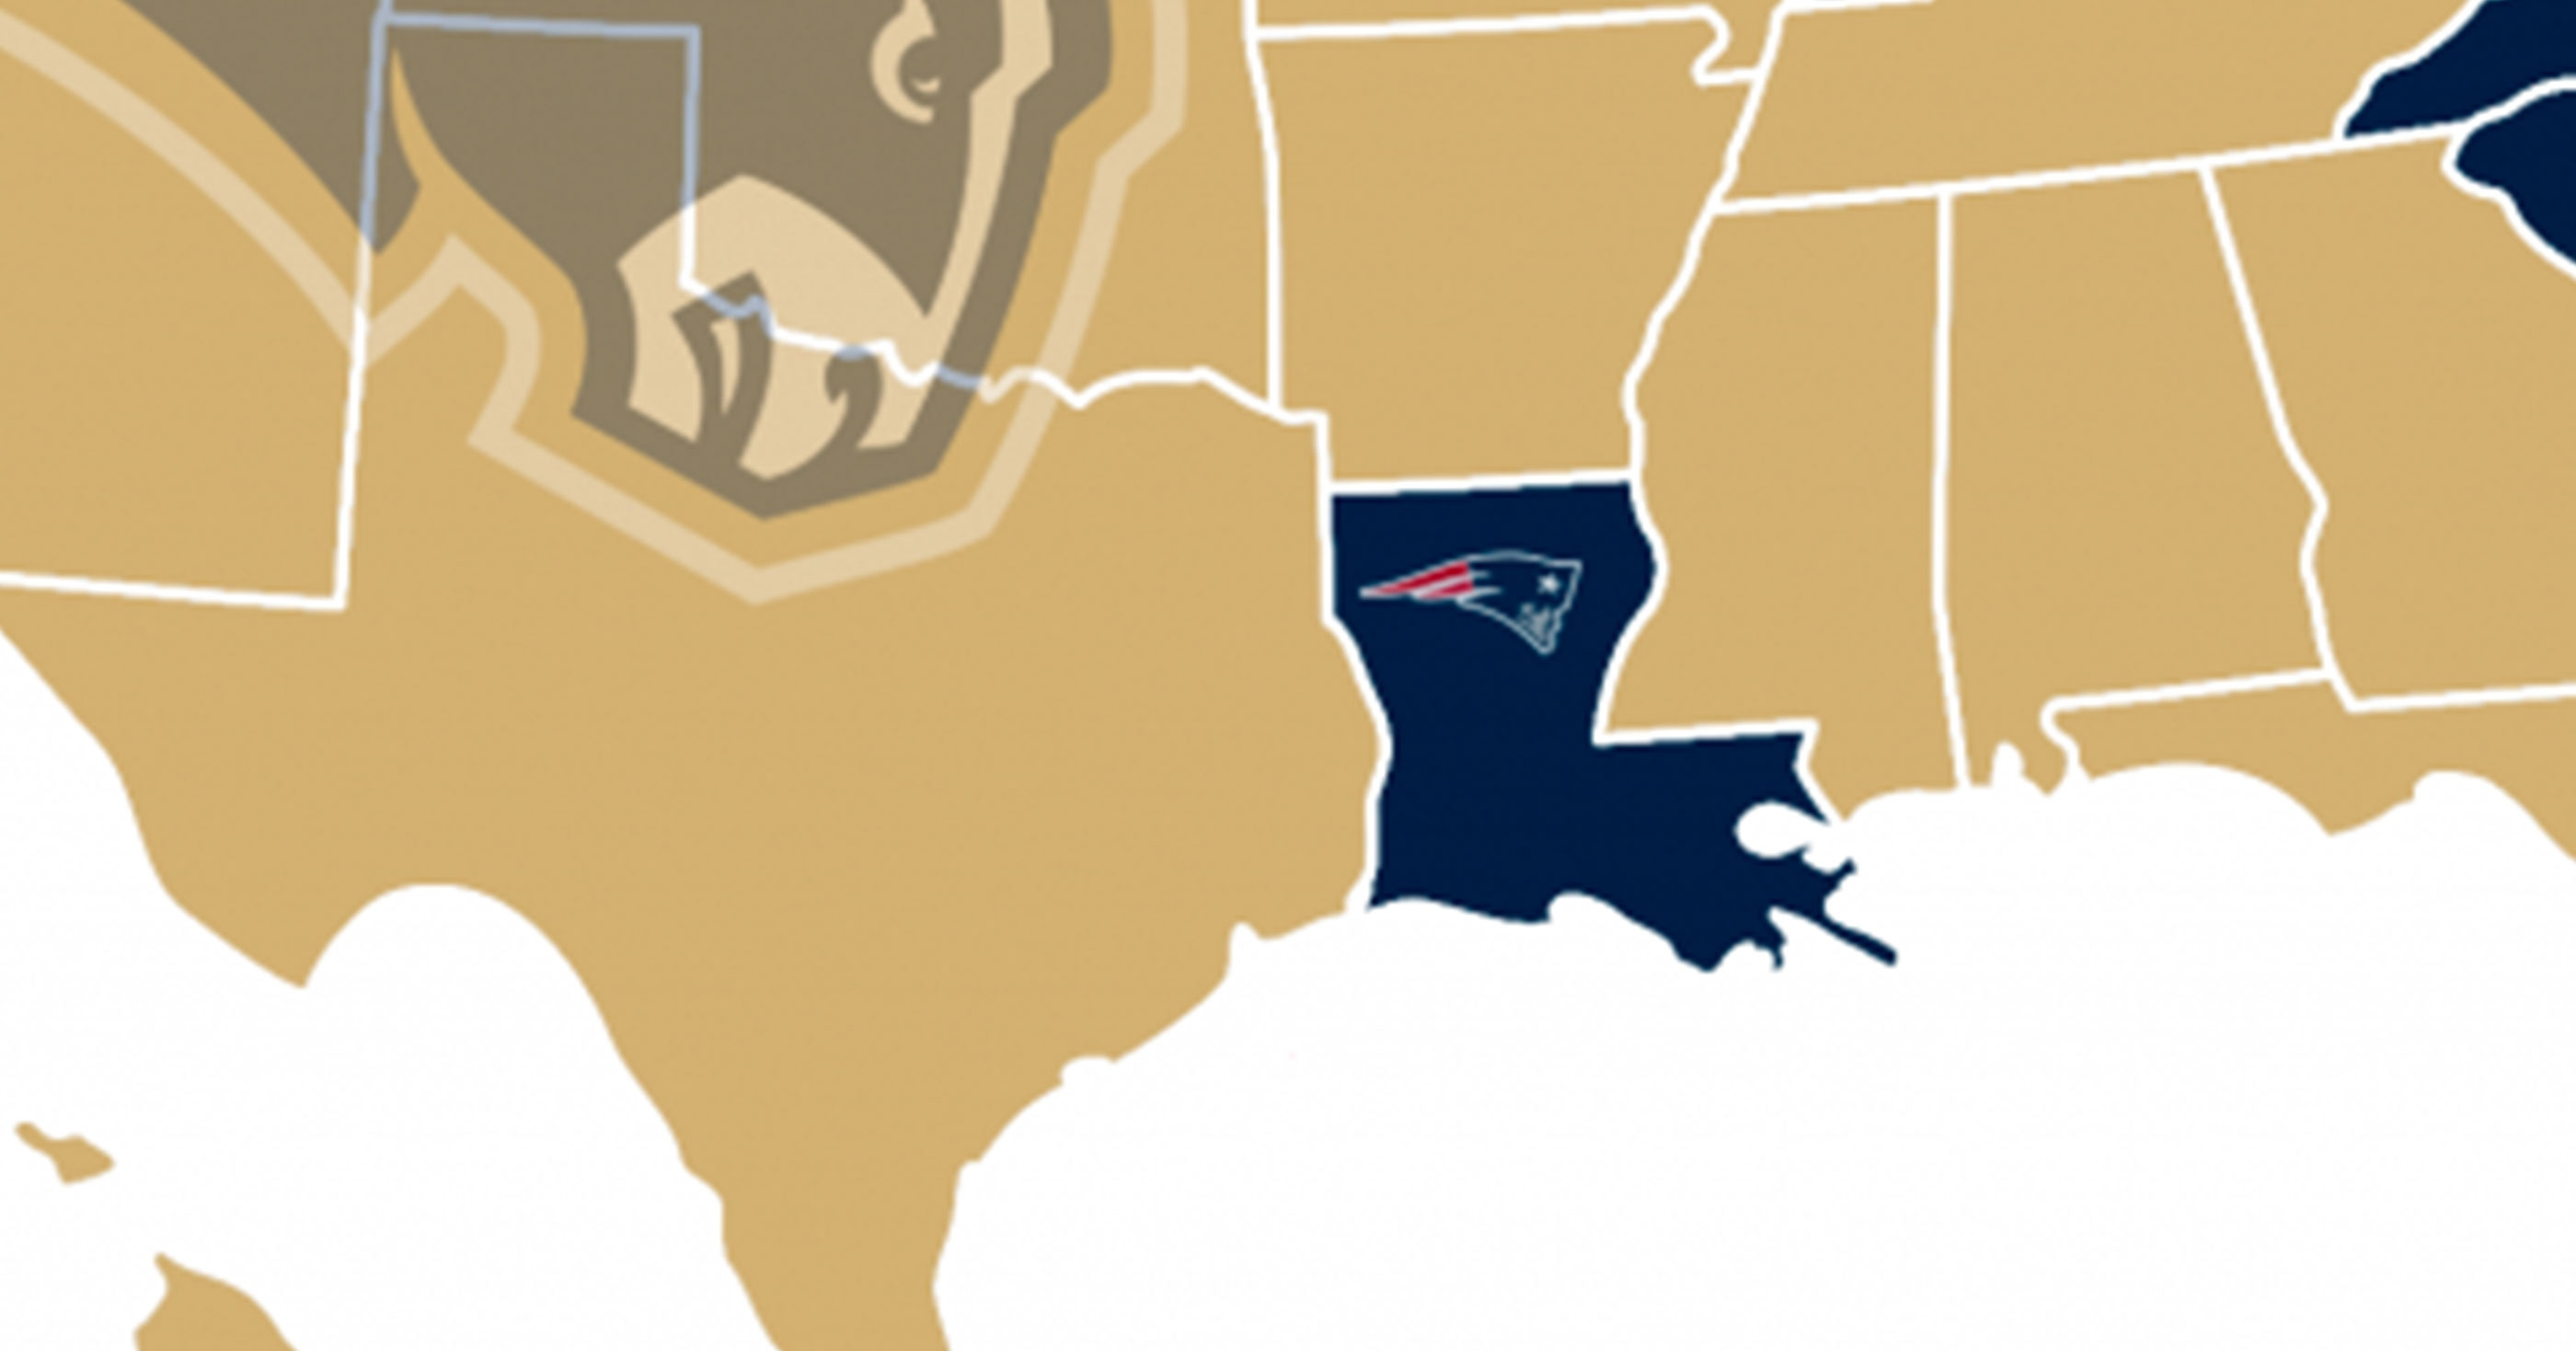 Map Shows Which Team Each State Is Rooting For In Super Bowl intended for Map Of Superbowl